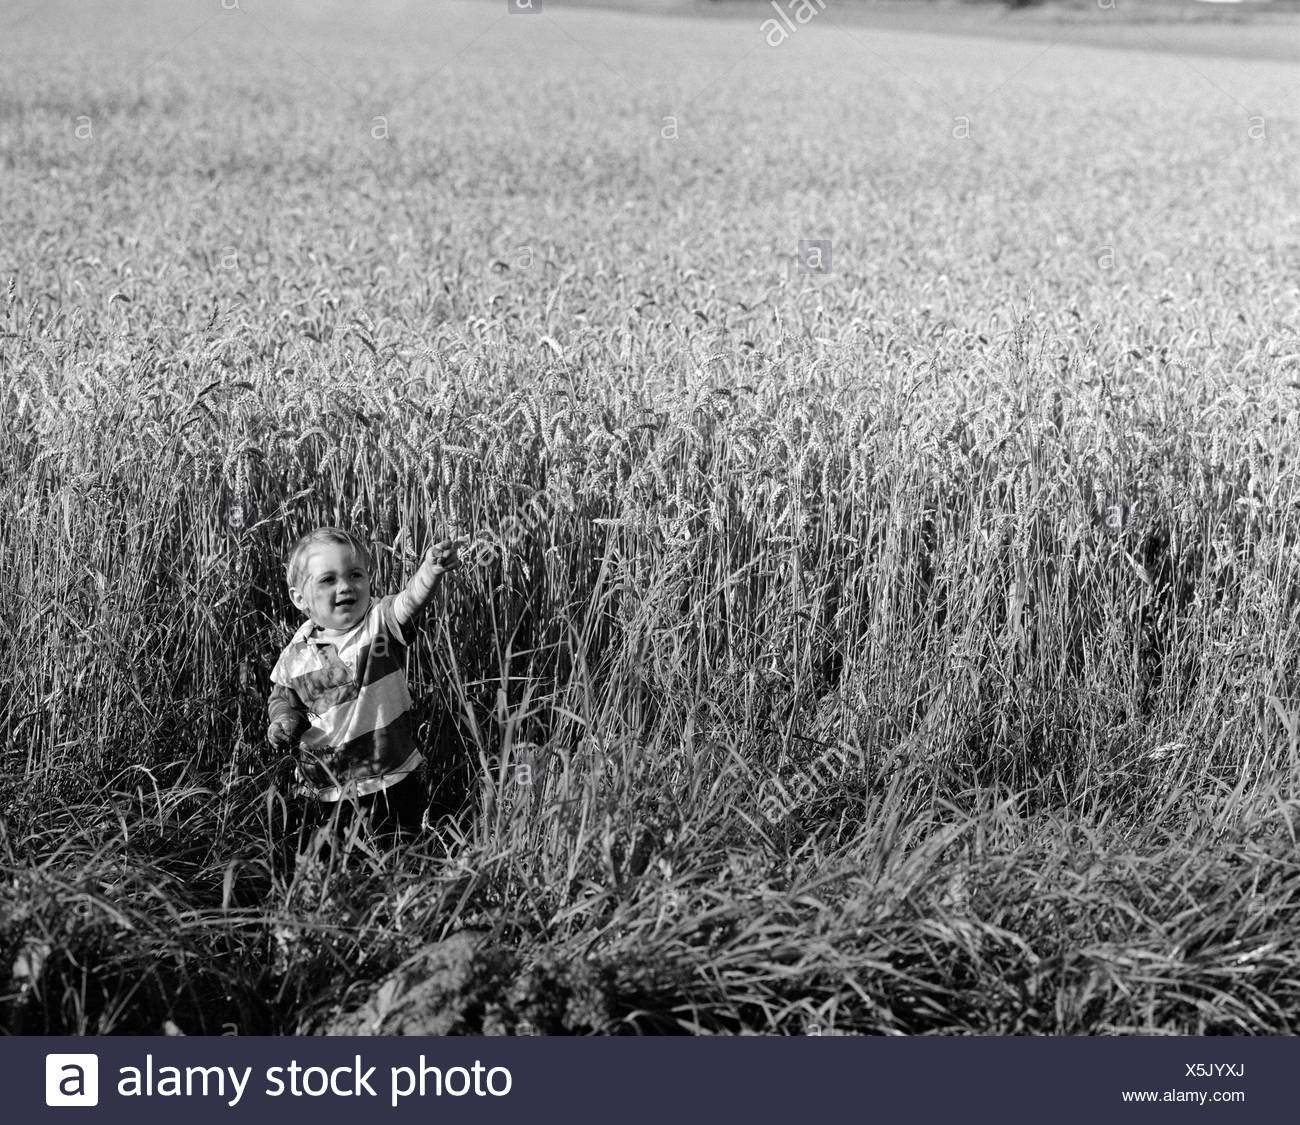 Boy playing in wheat field - Stock Image